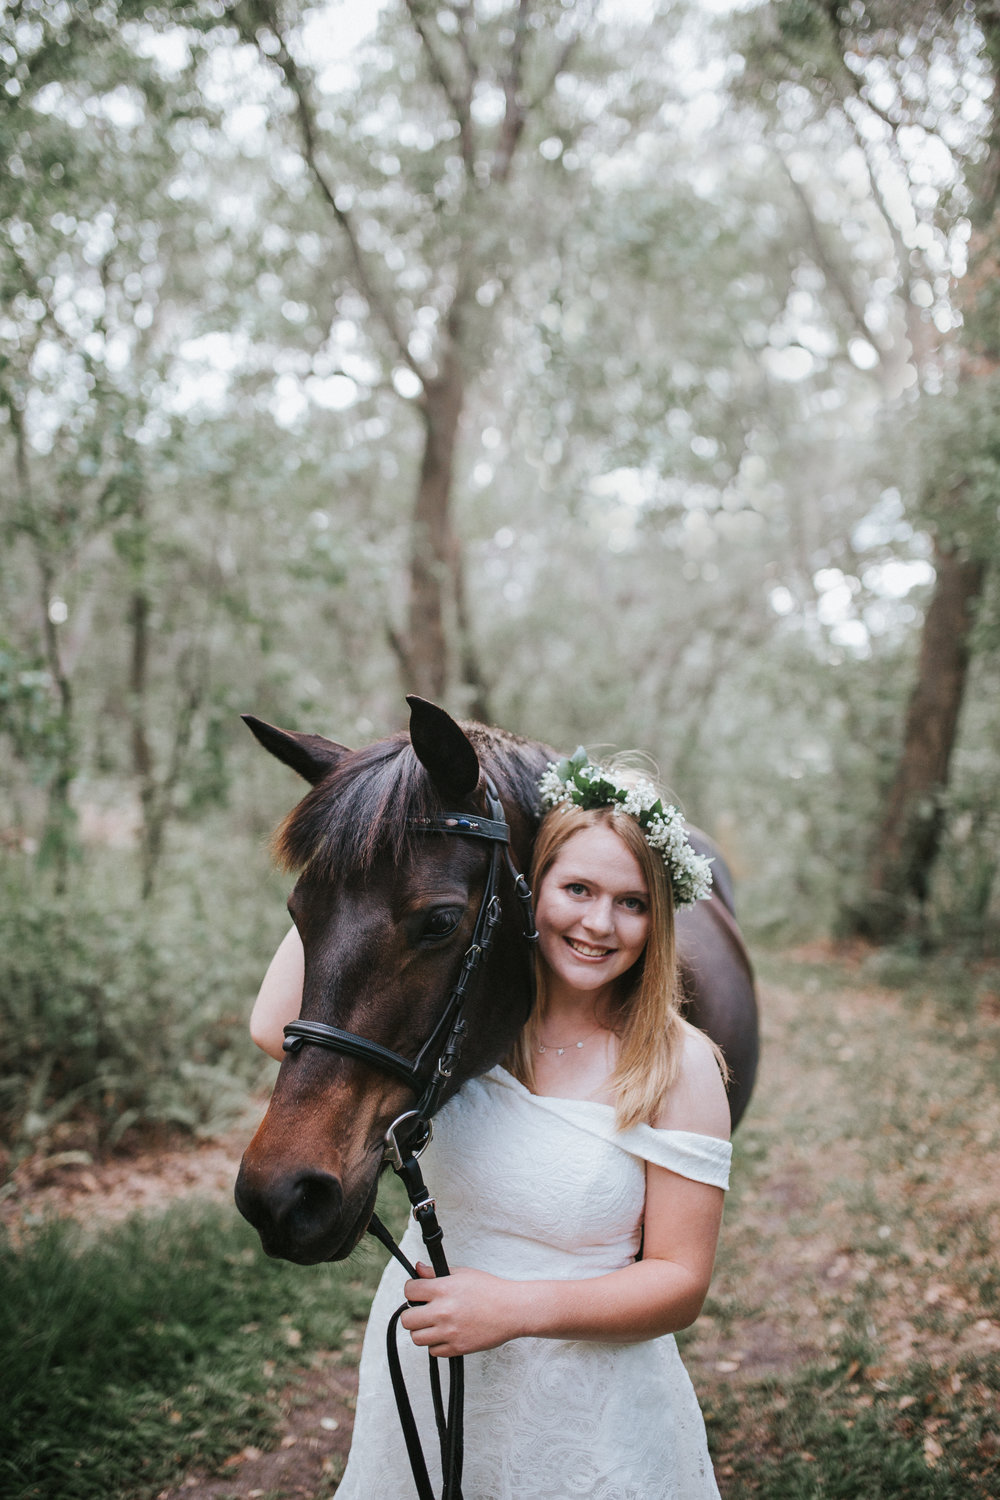 Midlothian VA High school senior with horse senior pictures